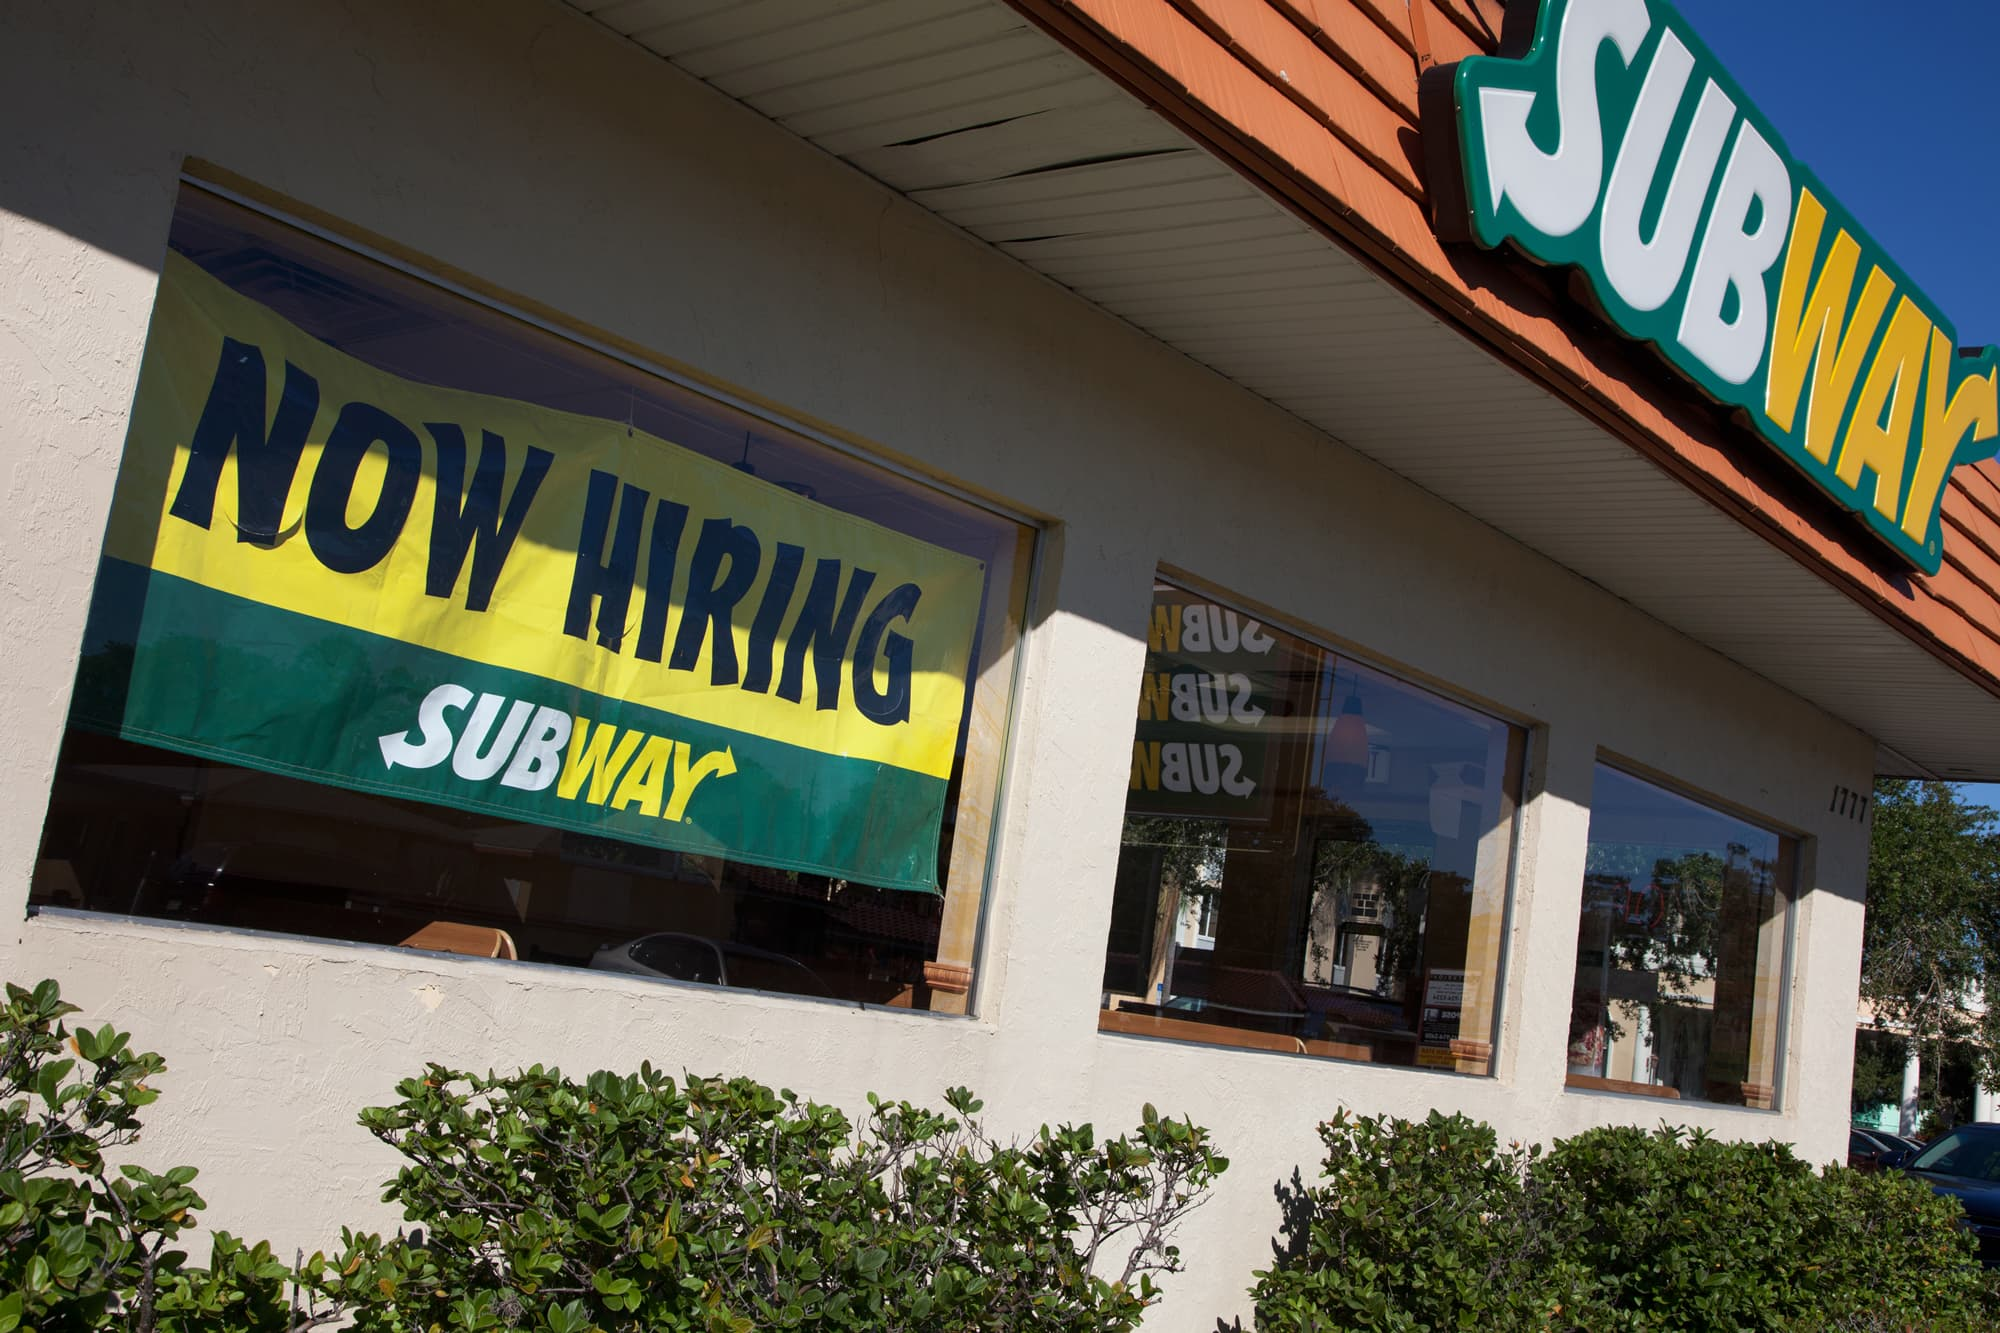 Subway franchisees to hire 50,000 workers as $5 footlong deal comes back